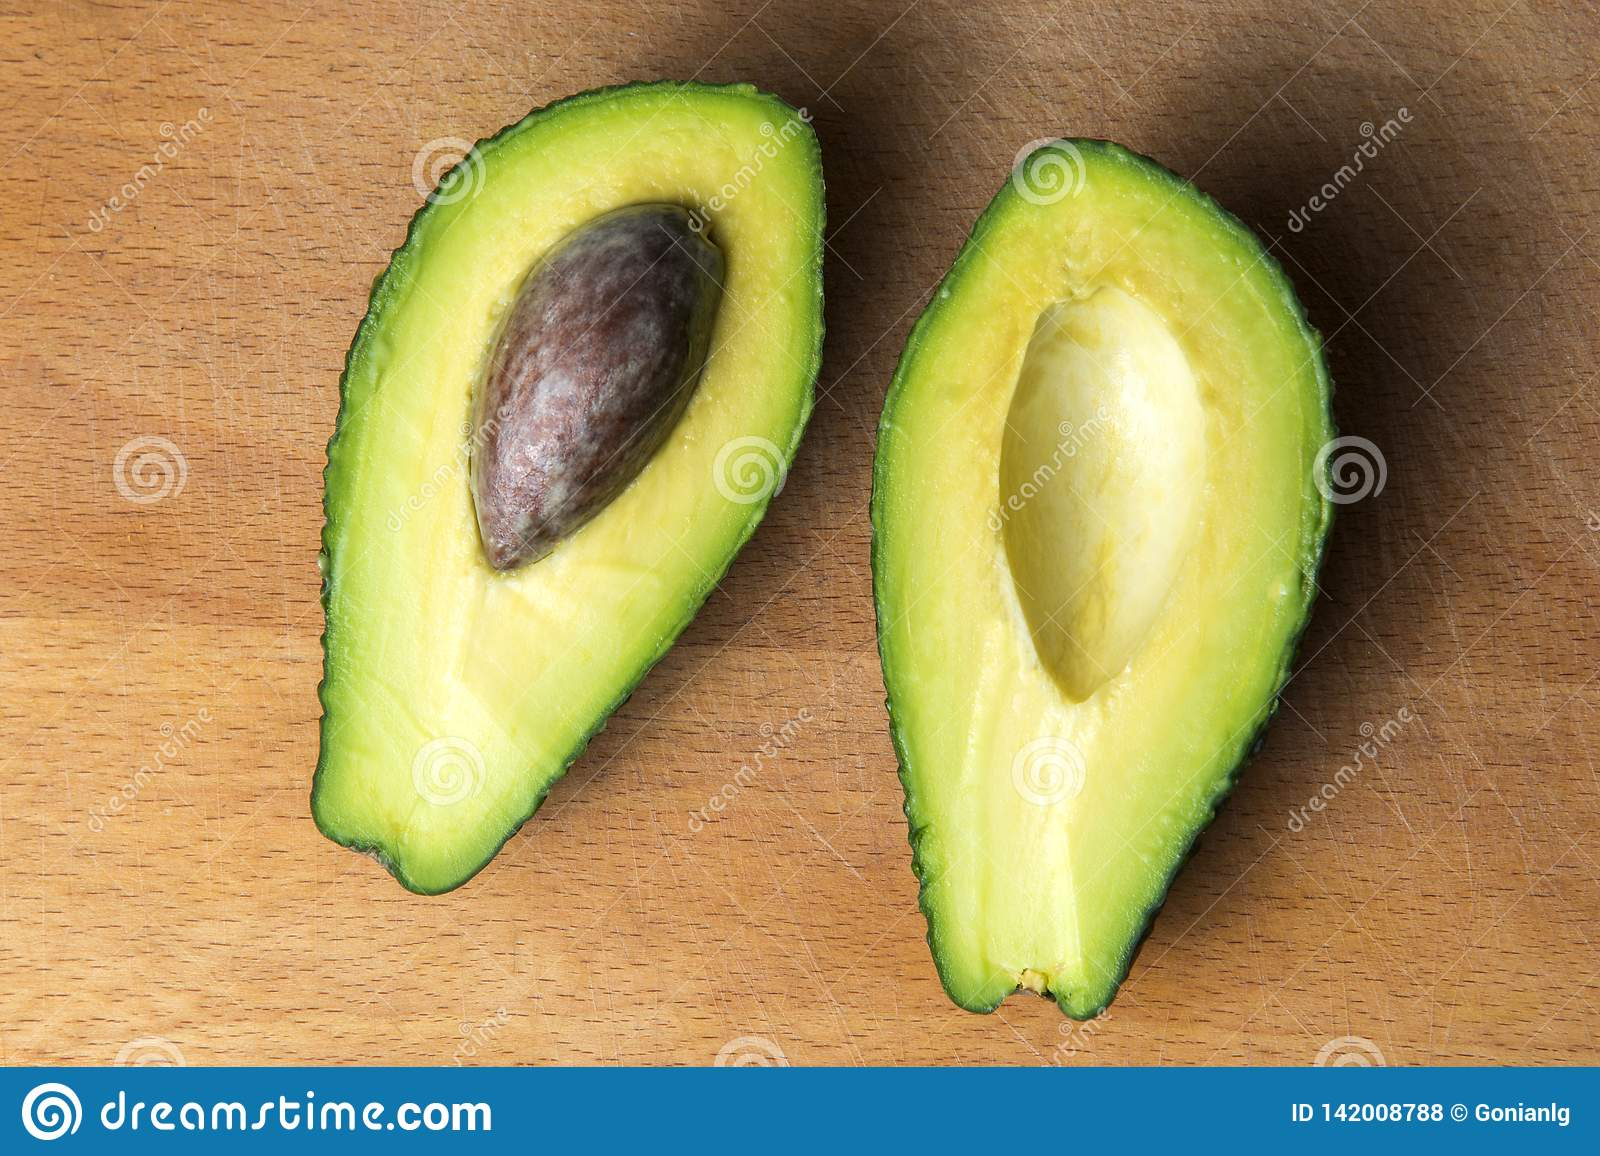 Avocado cut into 2 pieces on the kitchen board